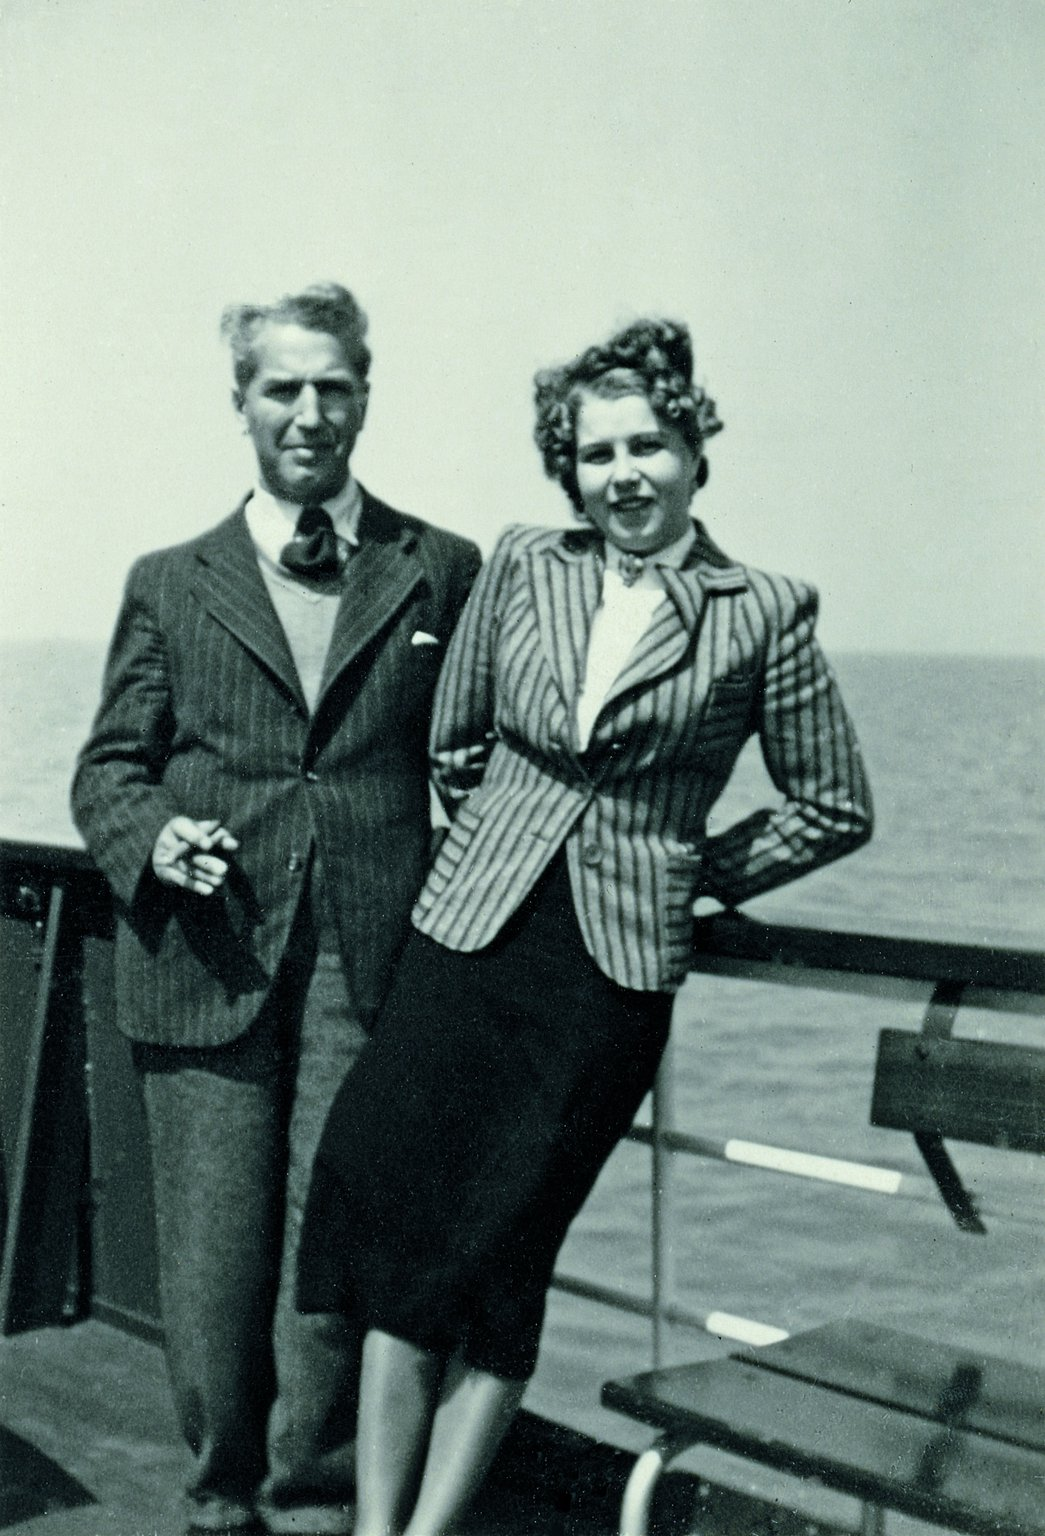 Fritz Pfeffer with his fiancée Charlotte Kaletta, around 1940.